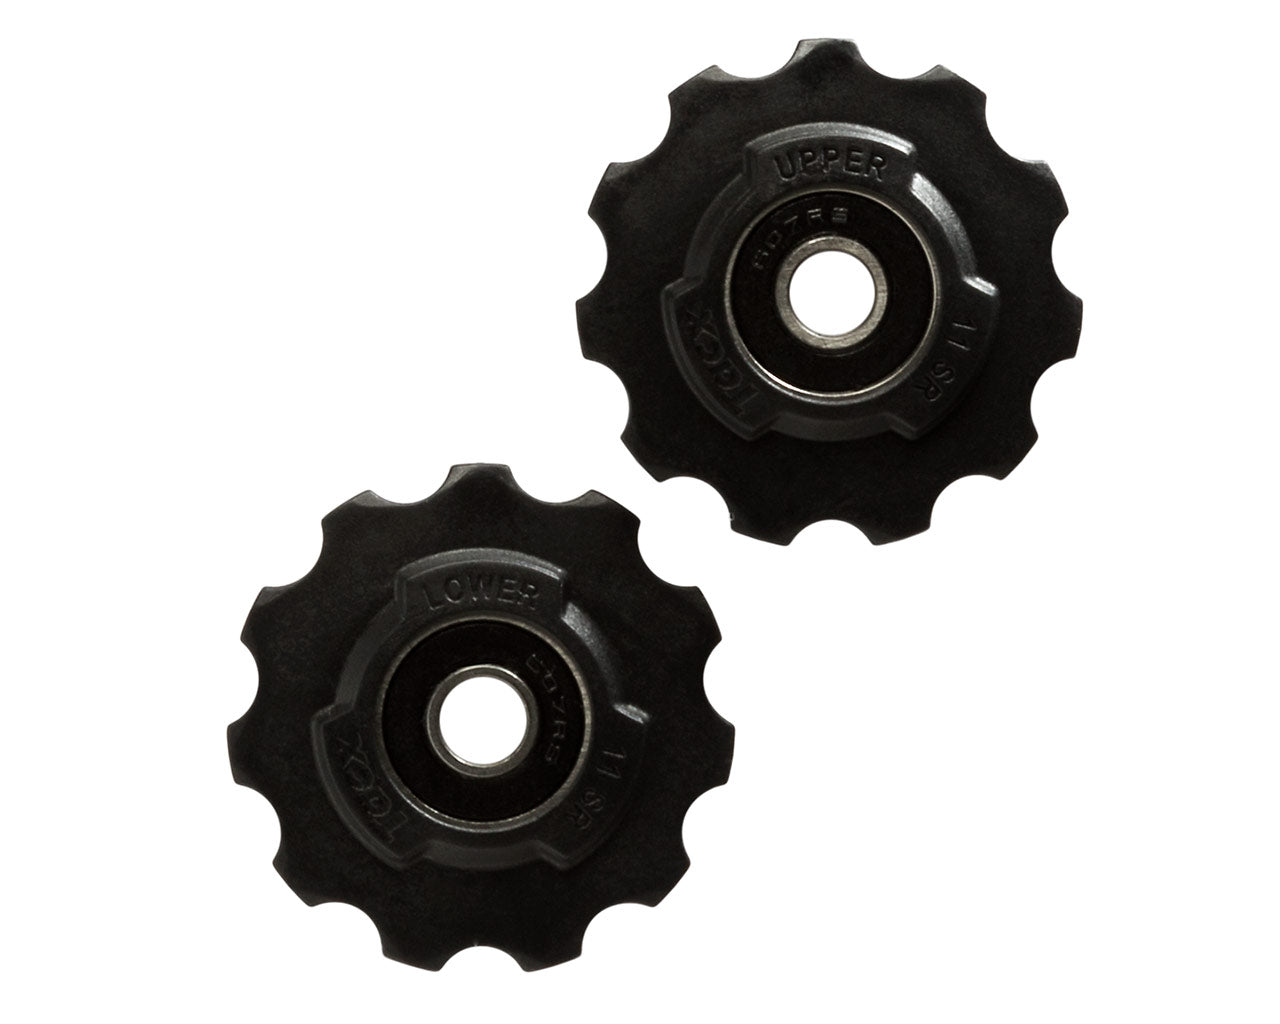 Tacx Sealed Pulley Wheels T4090 - Sram & Shimano 9,10 Speed